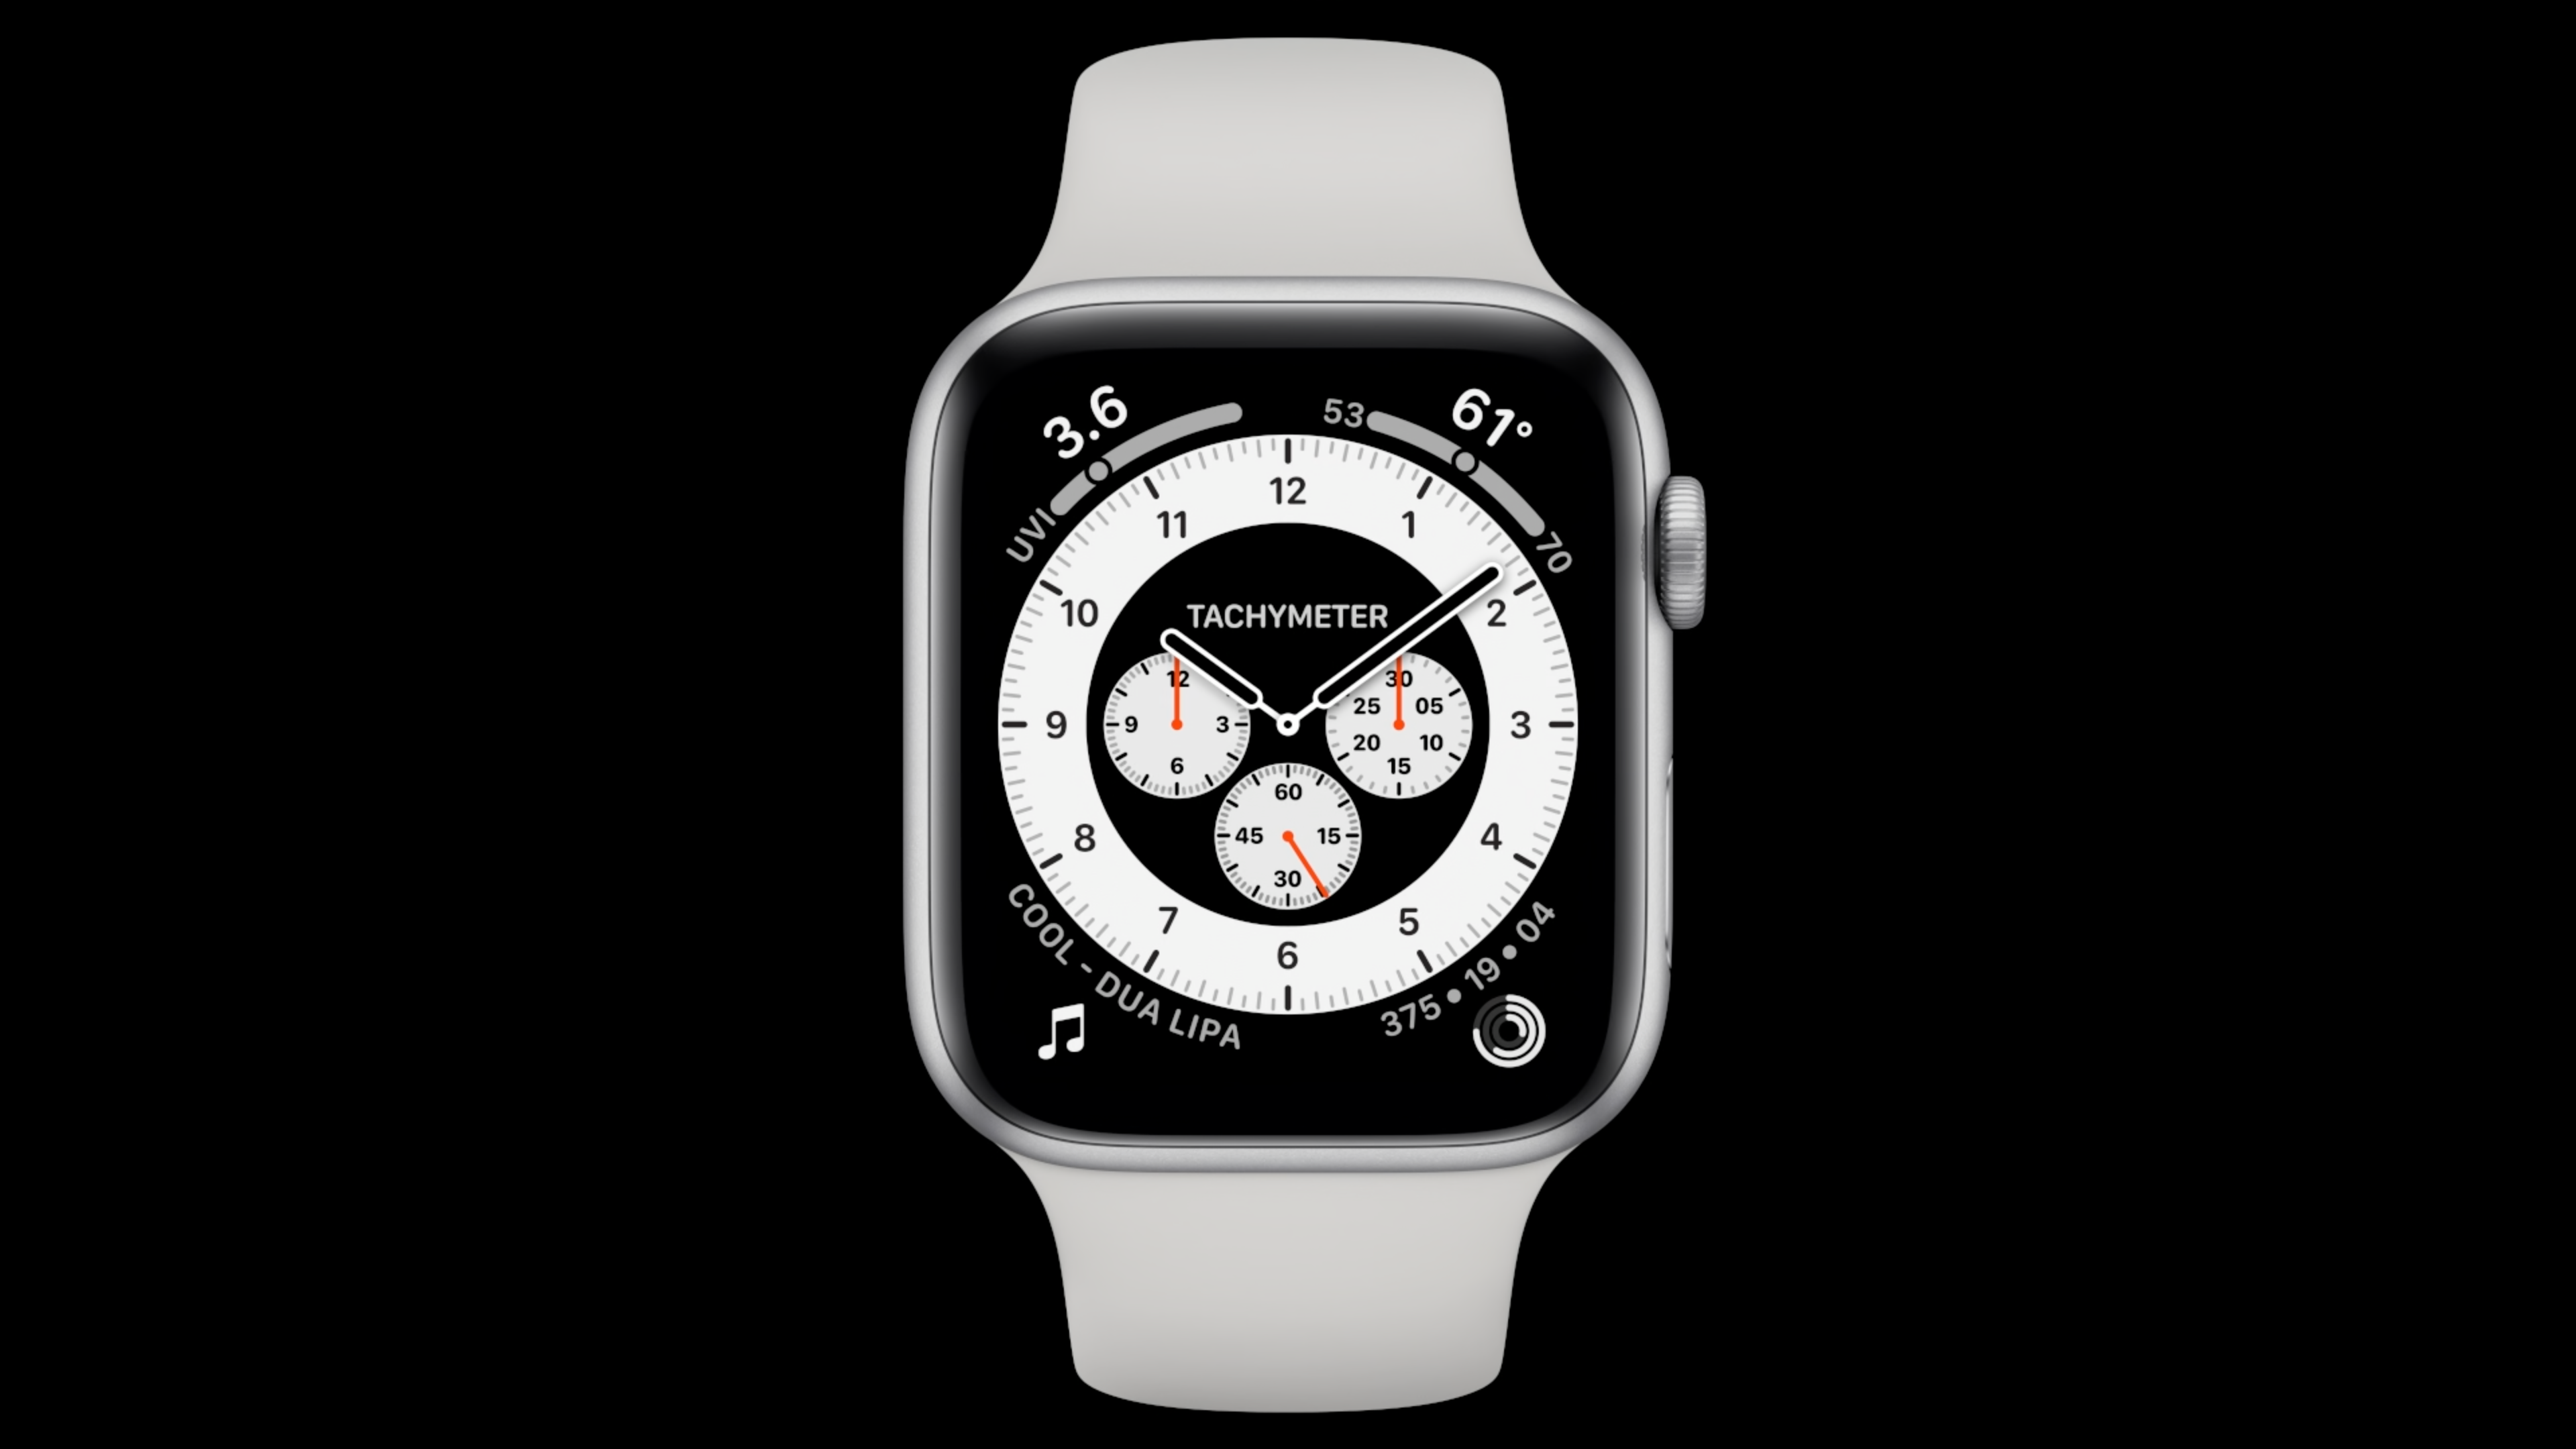 058-apple-event-9-15-2020-apple-watch-series-6.png